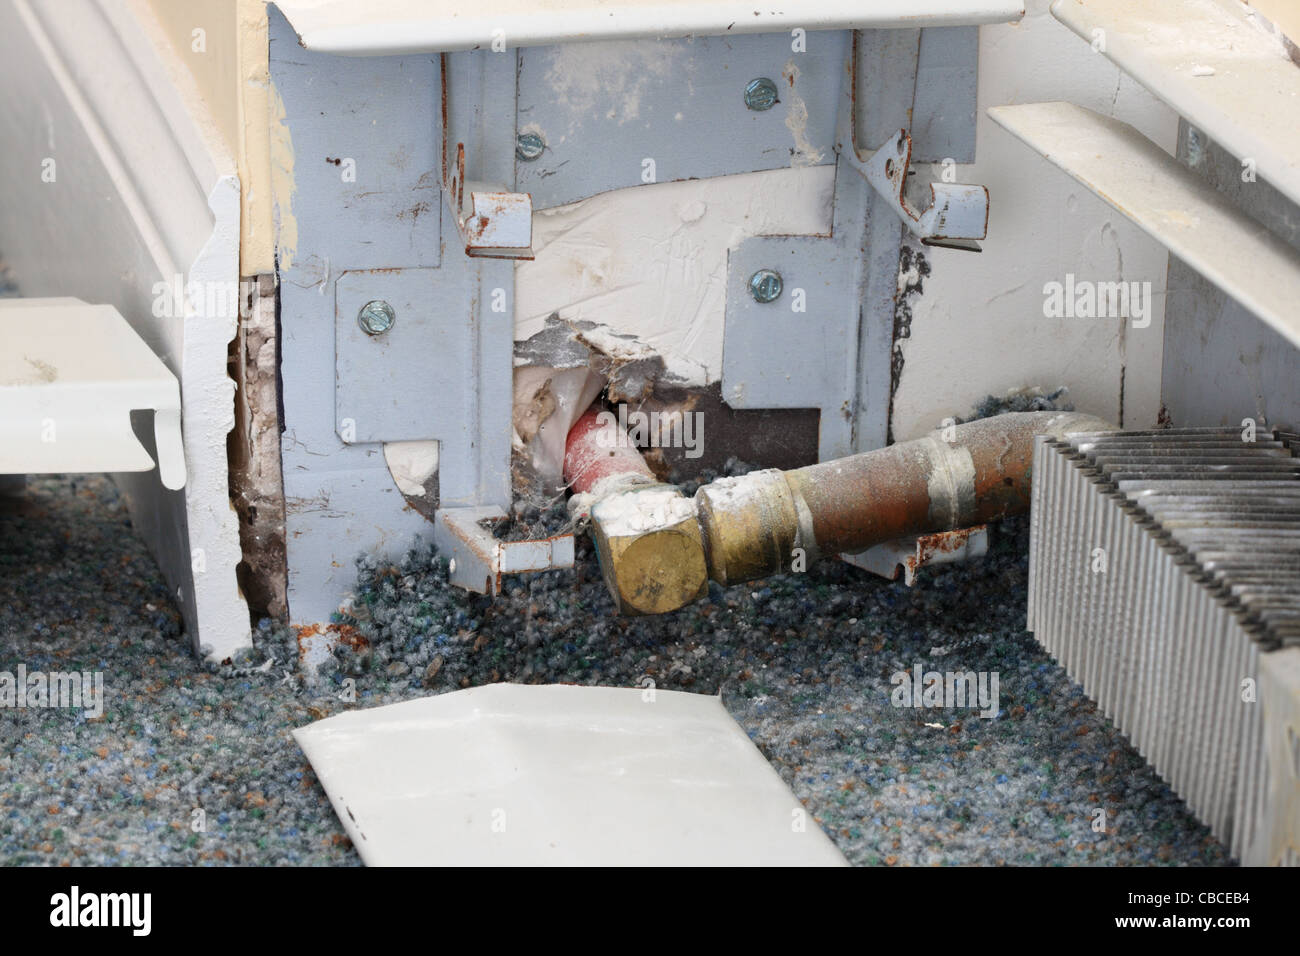 exposed baseboard heater heating pipe during home repair - Stock Image